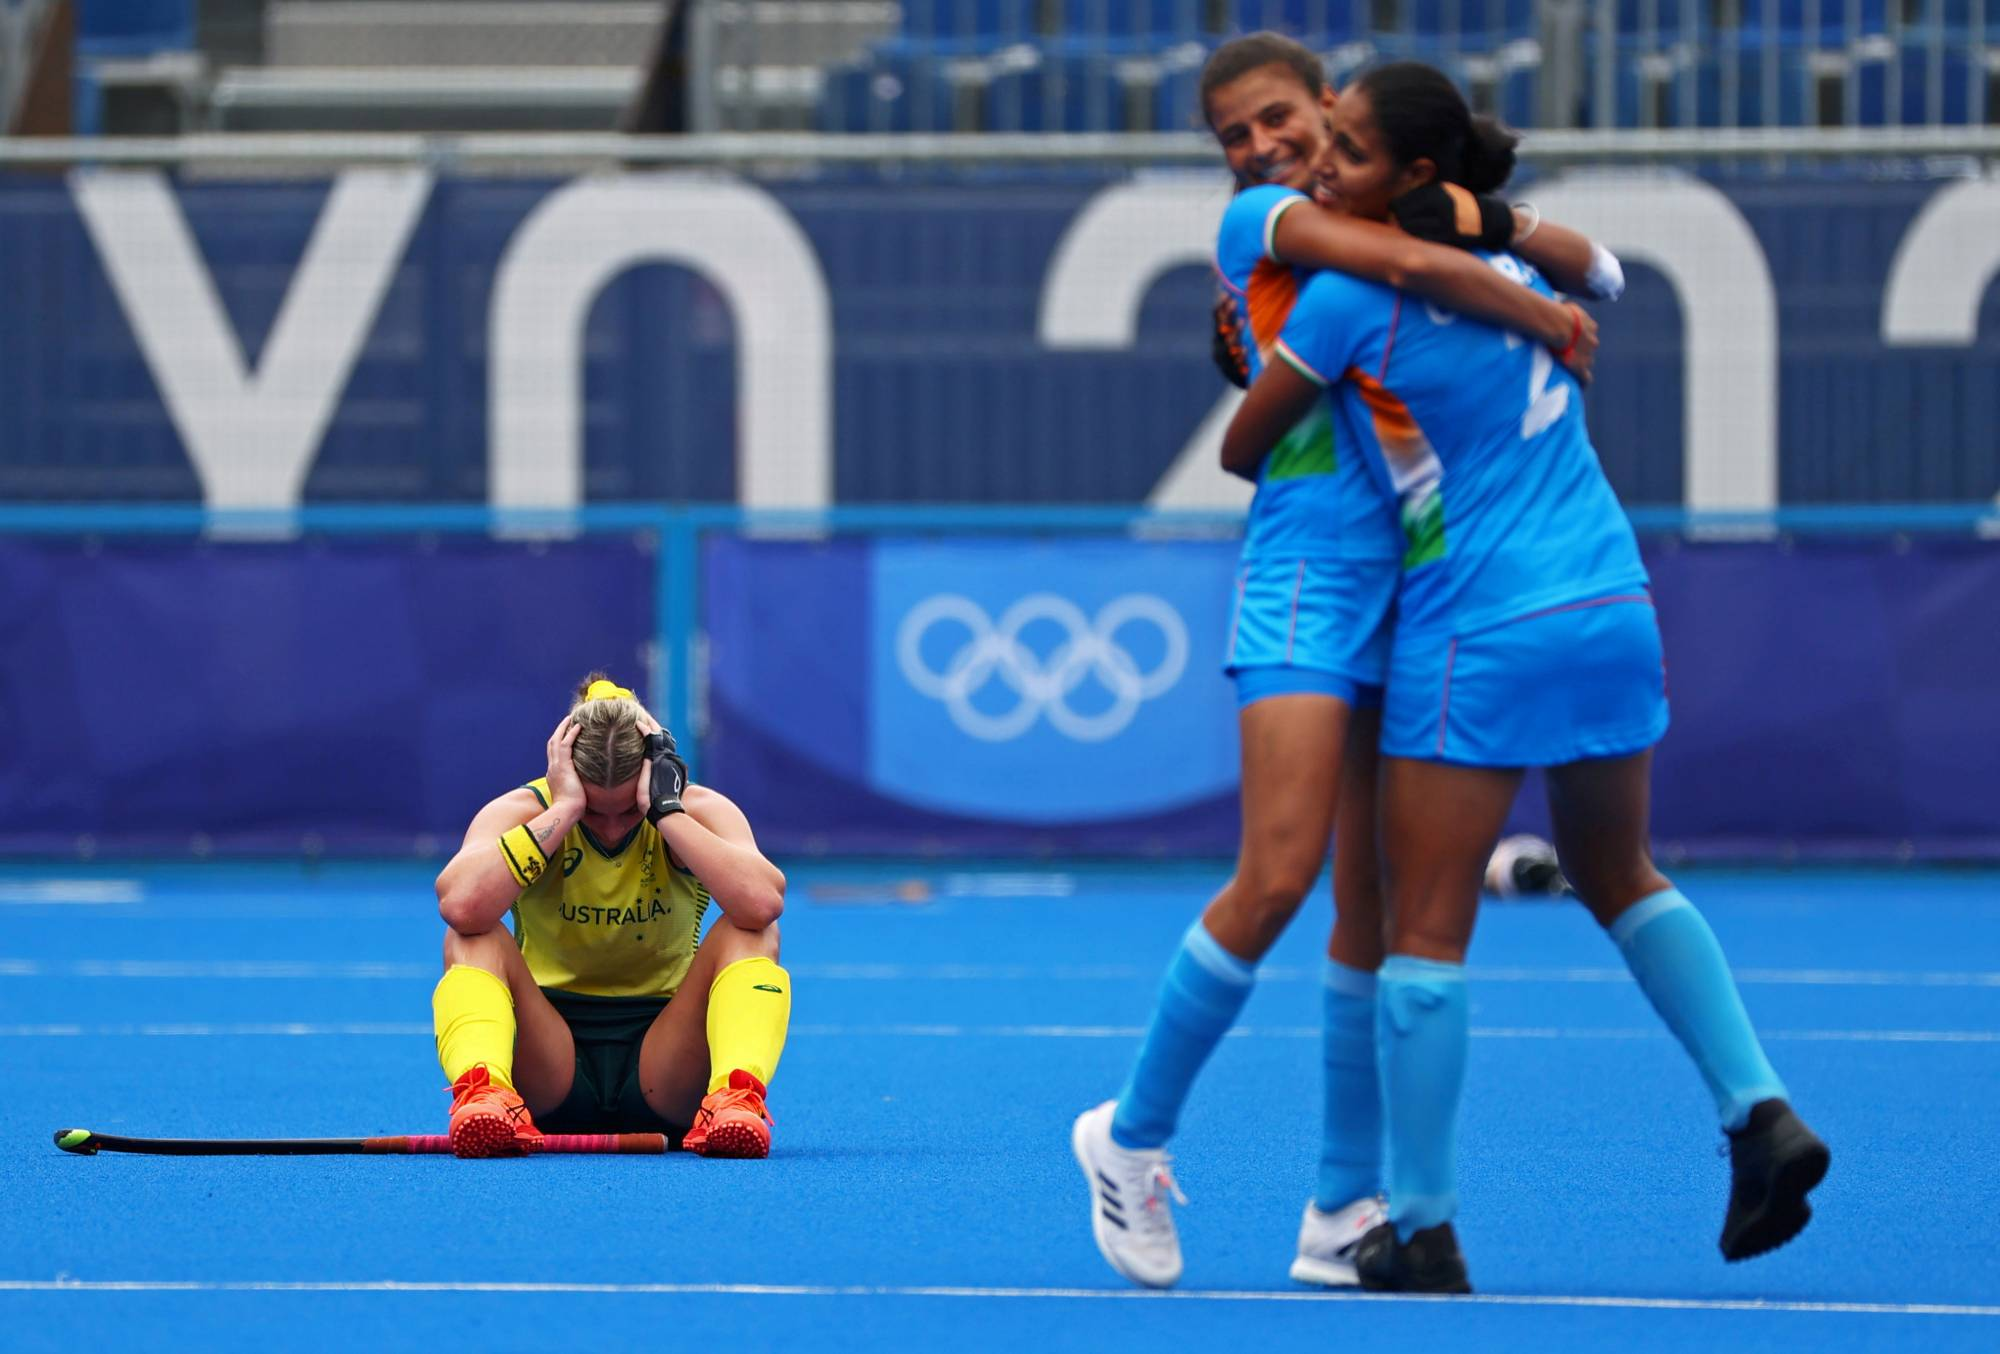 Australia's Mariah Williams reacts after her teams loss to India in the women's hockey quarterfinals    REUTERS